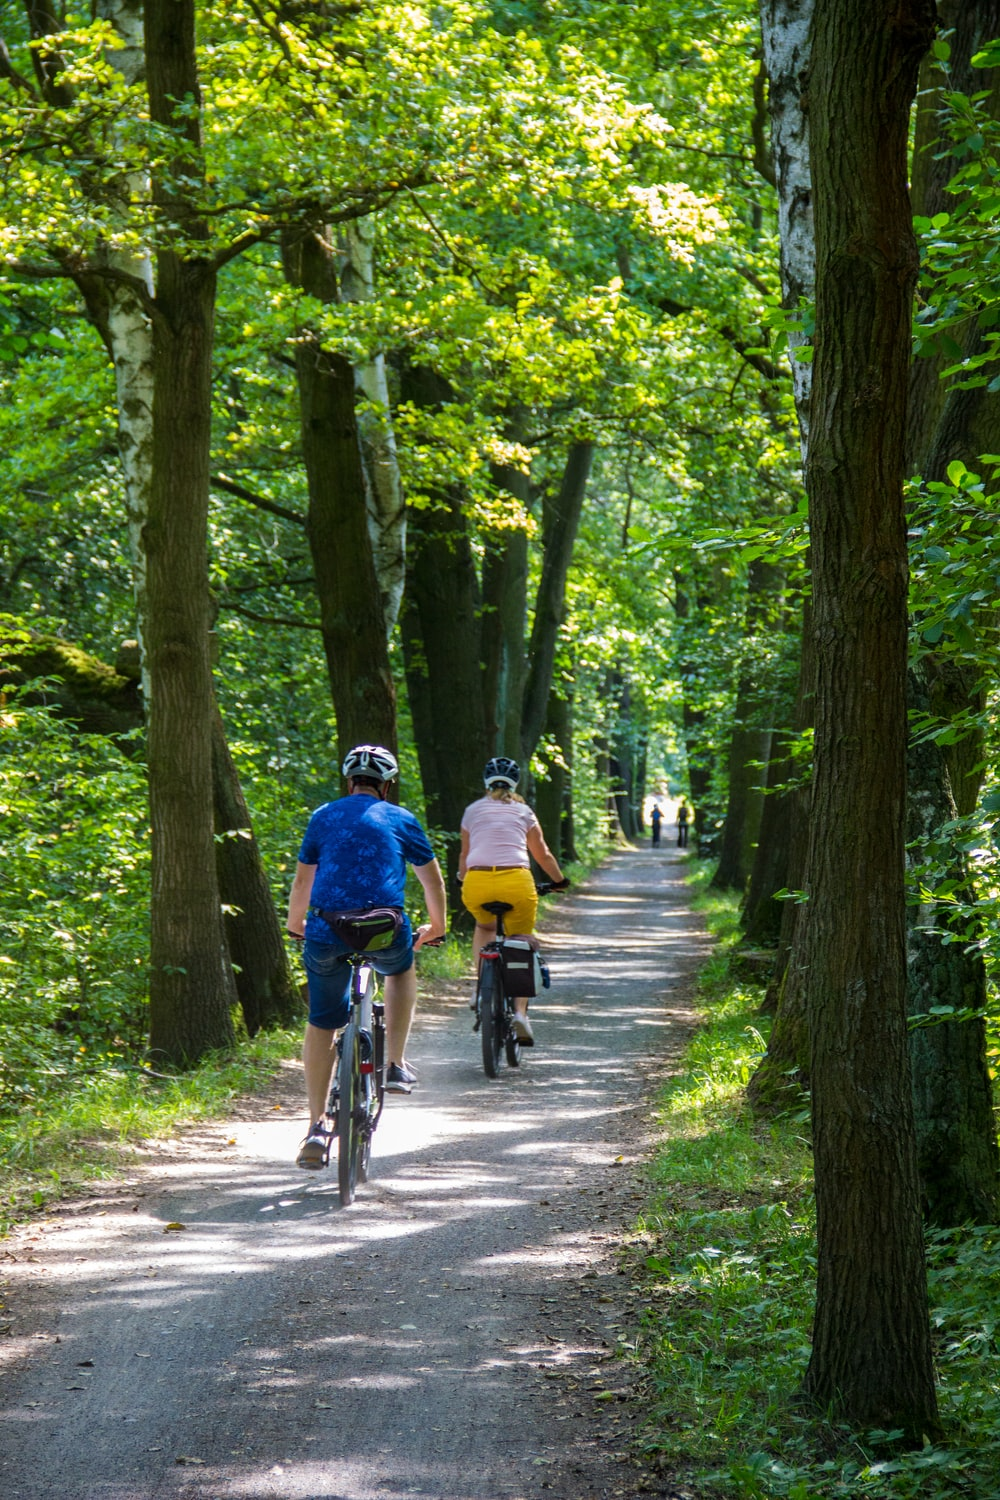 people riding bicycle on road between green trees during daytime